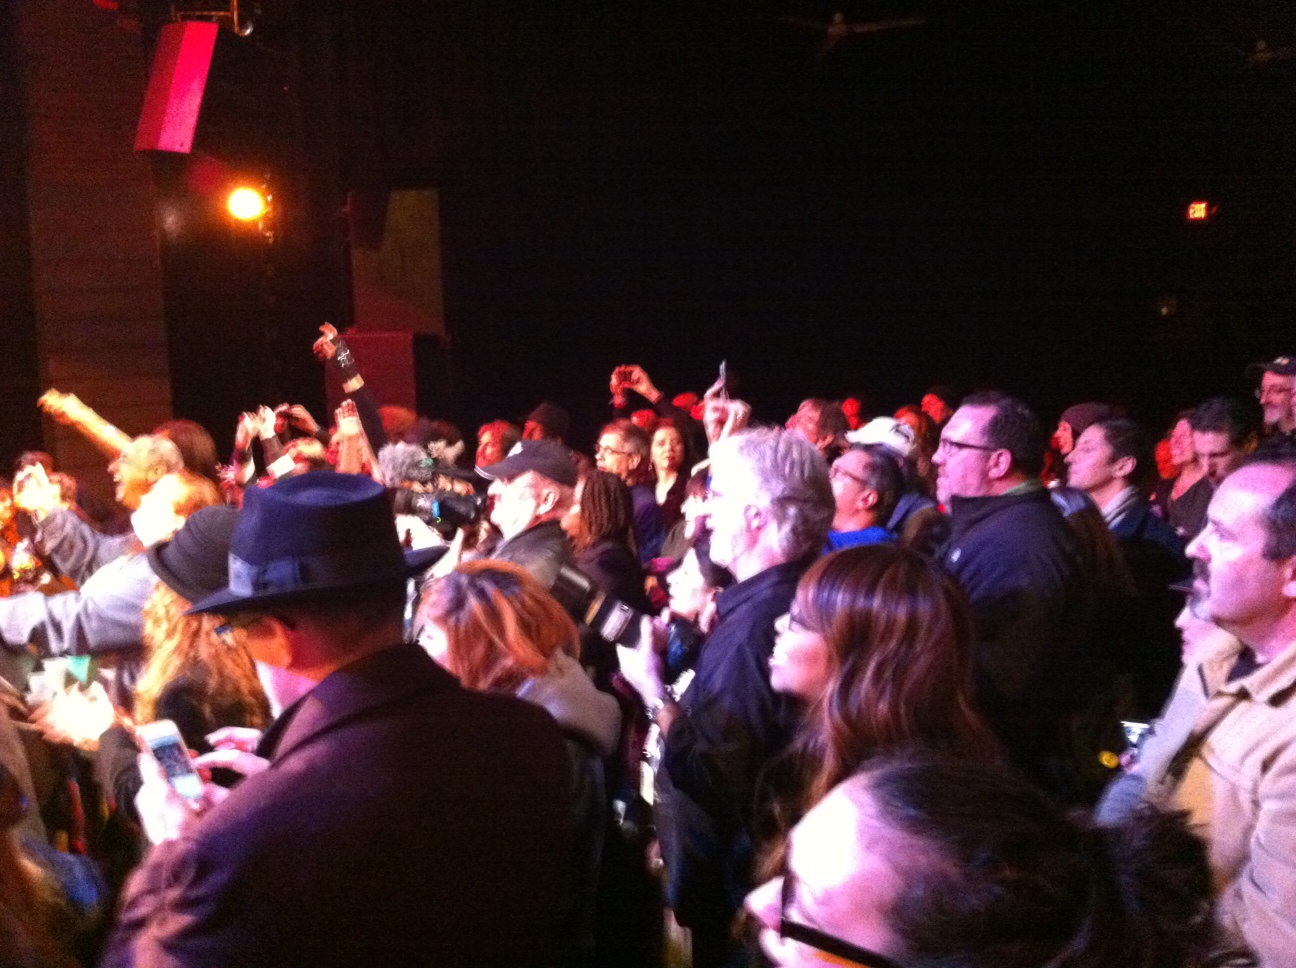 The crowd at the New Daisy Theatre are luvn the energy, music and comaraderie at the midnight jam.